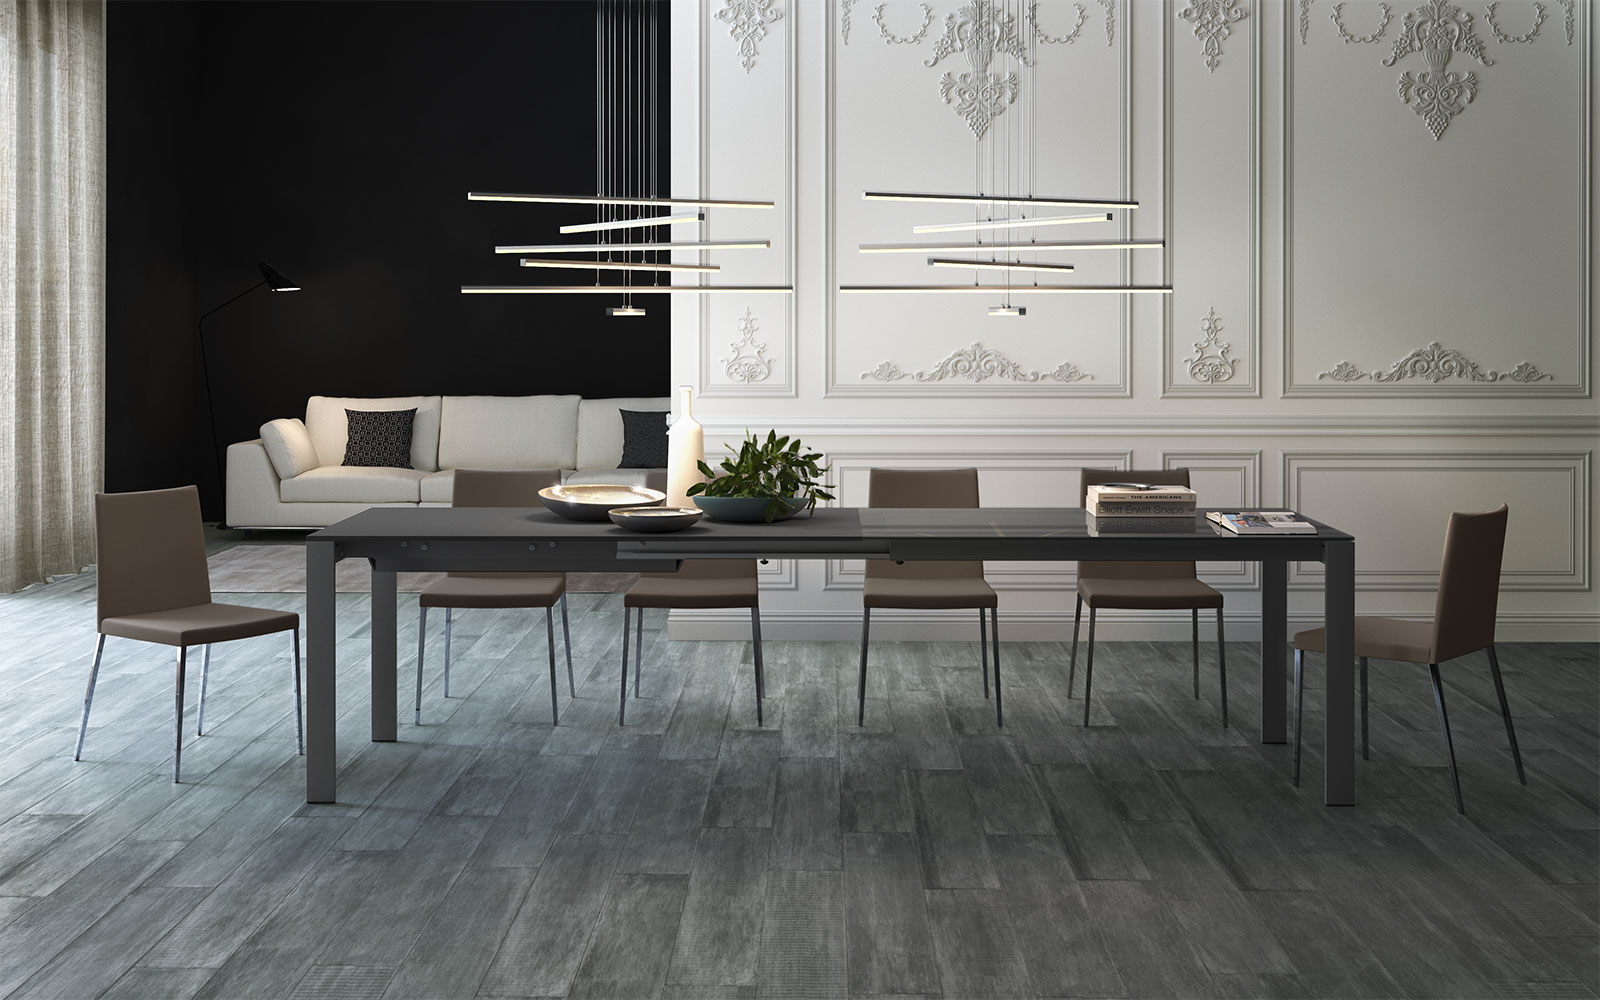 Napoli Dining Table